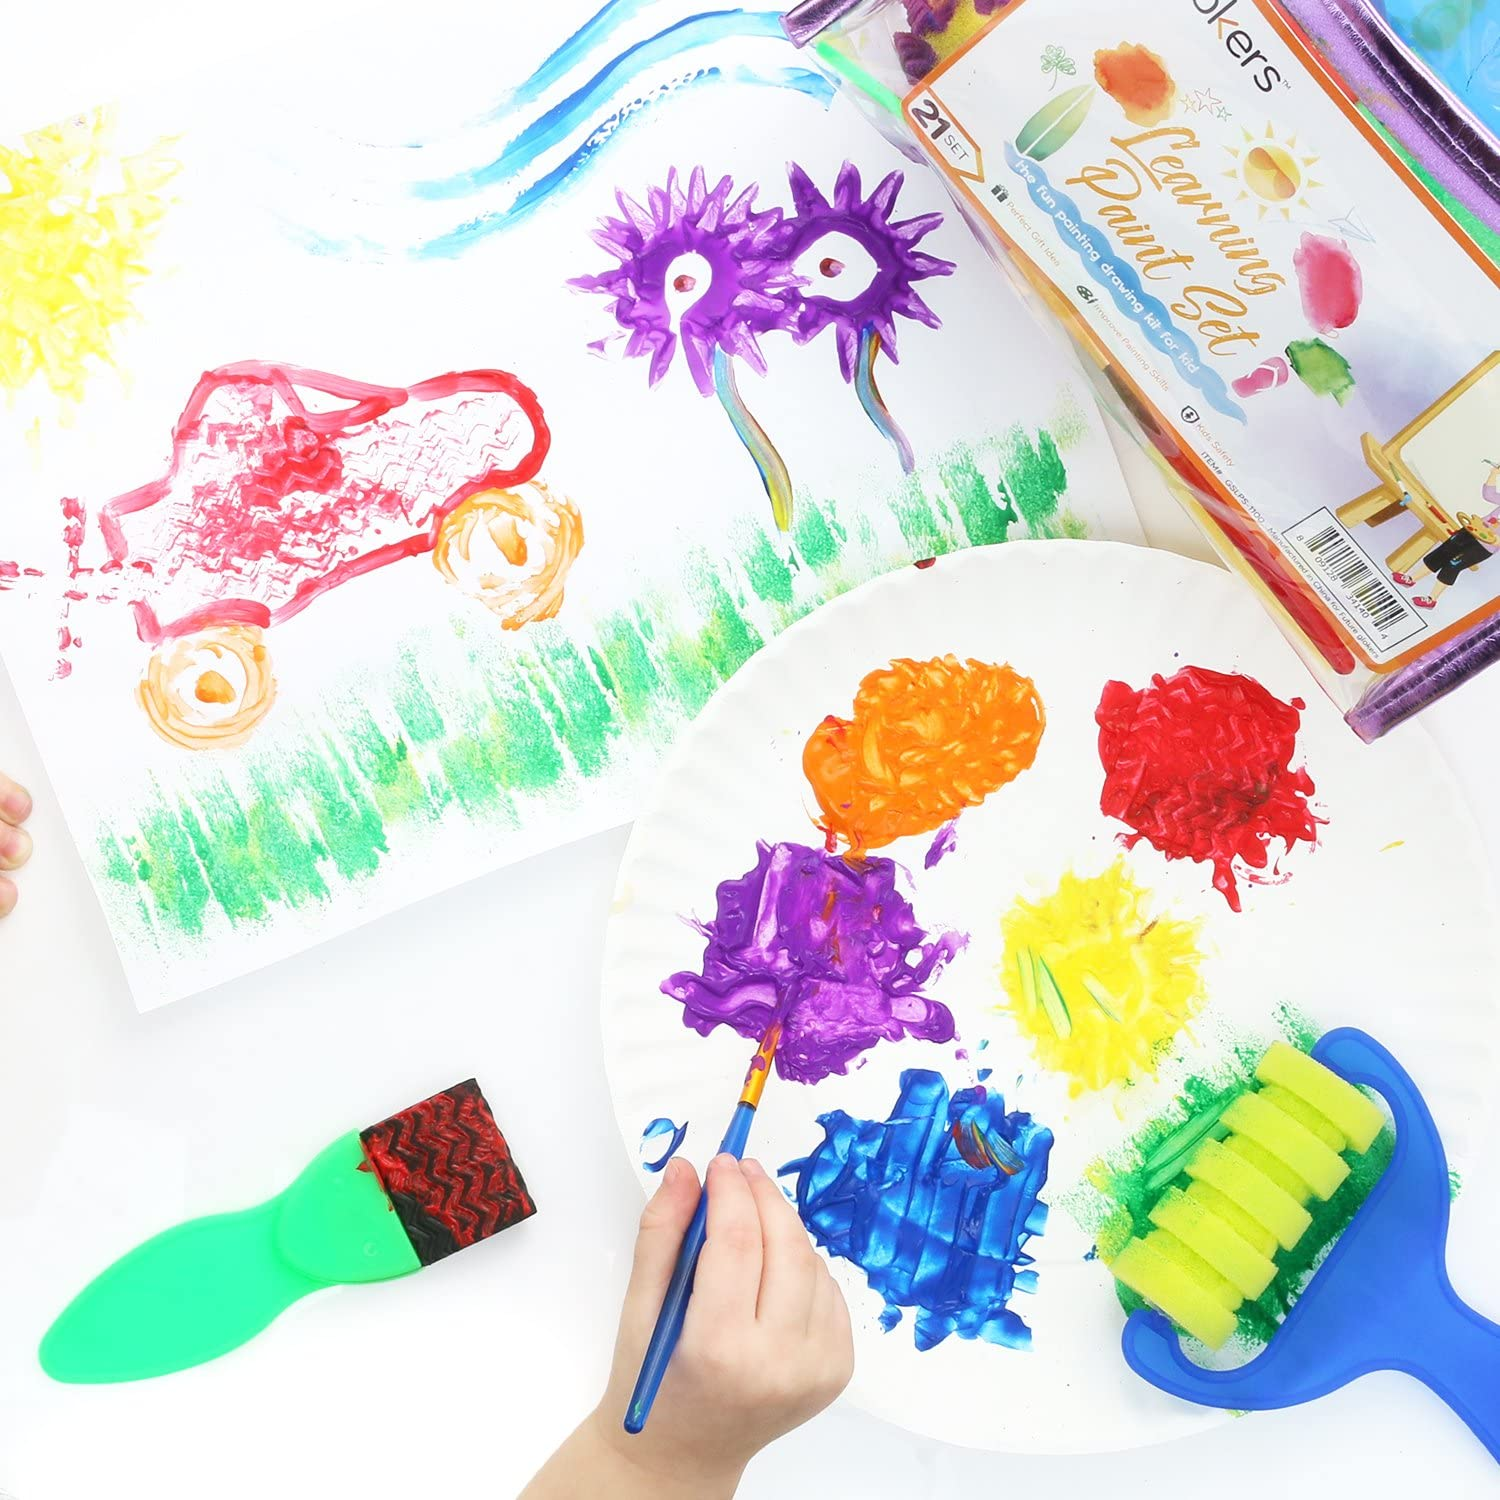 Early Learning Kids Paint Set Washable Acrylic Finger Paint with Assorted Painting Brushes Sponges Portable Case for Kids Toddlers Drawing Gifts